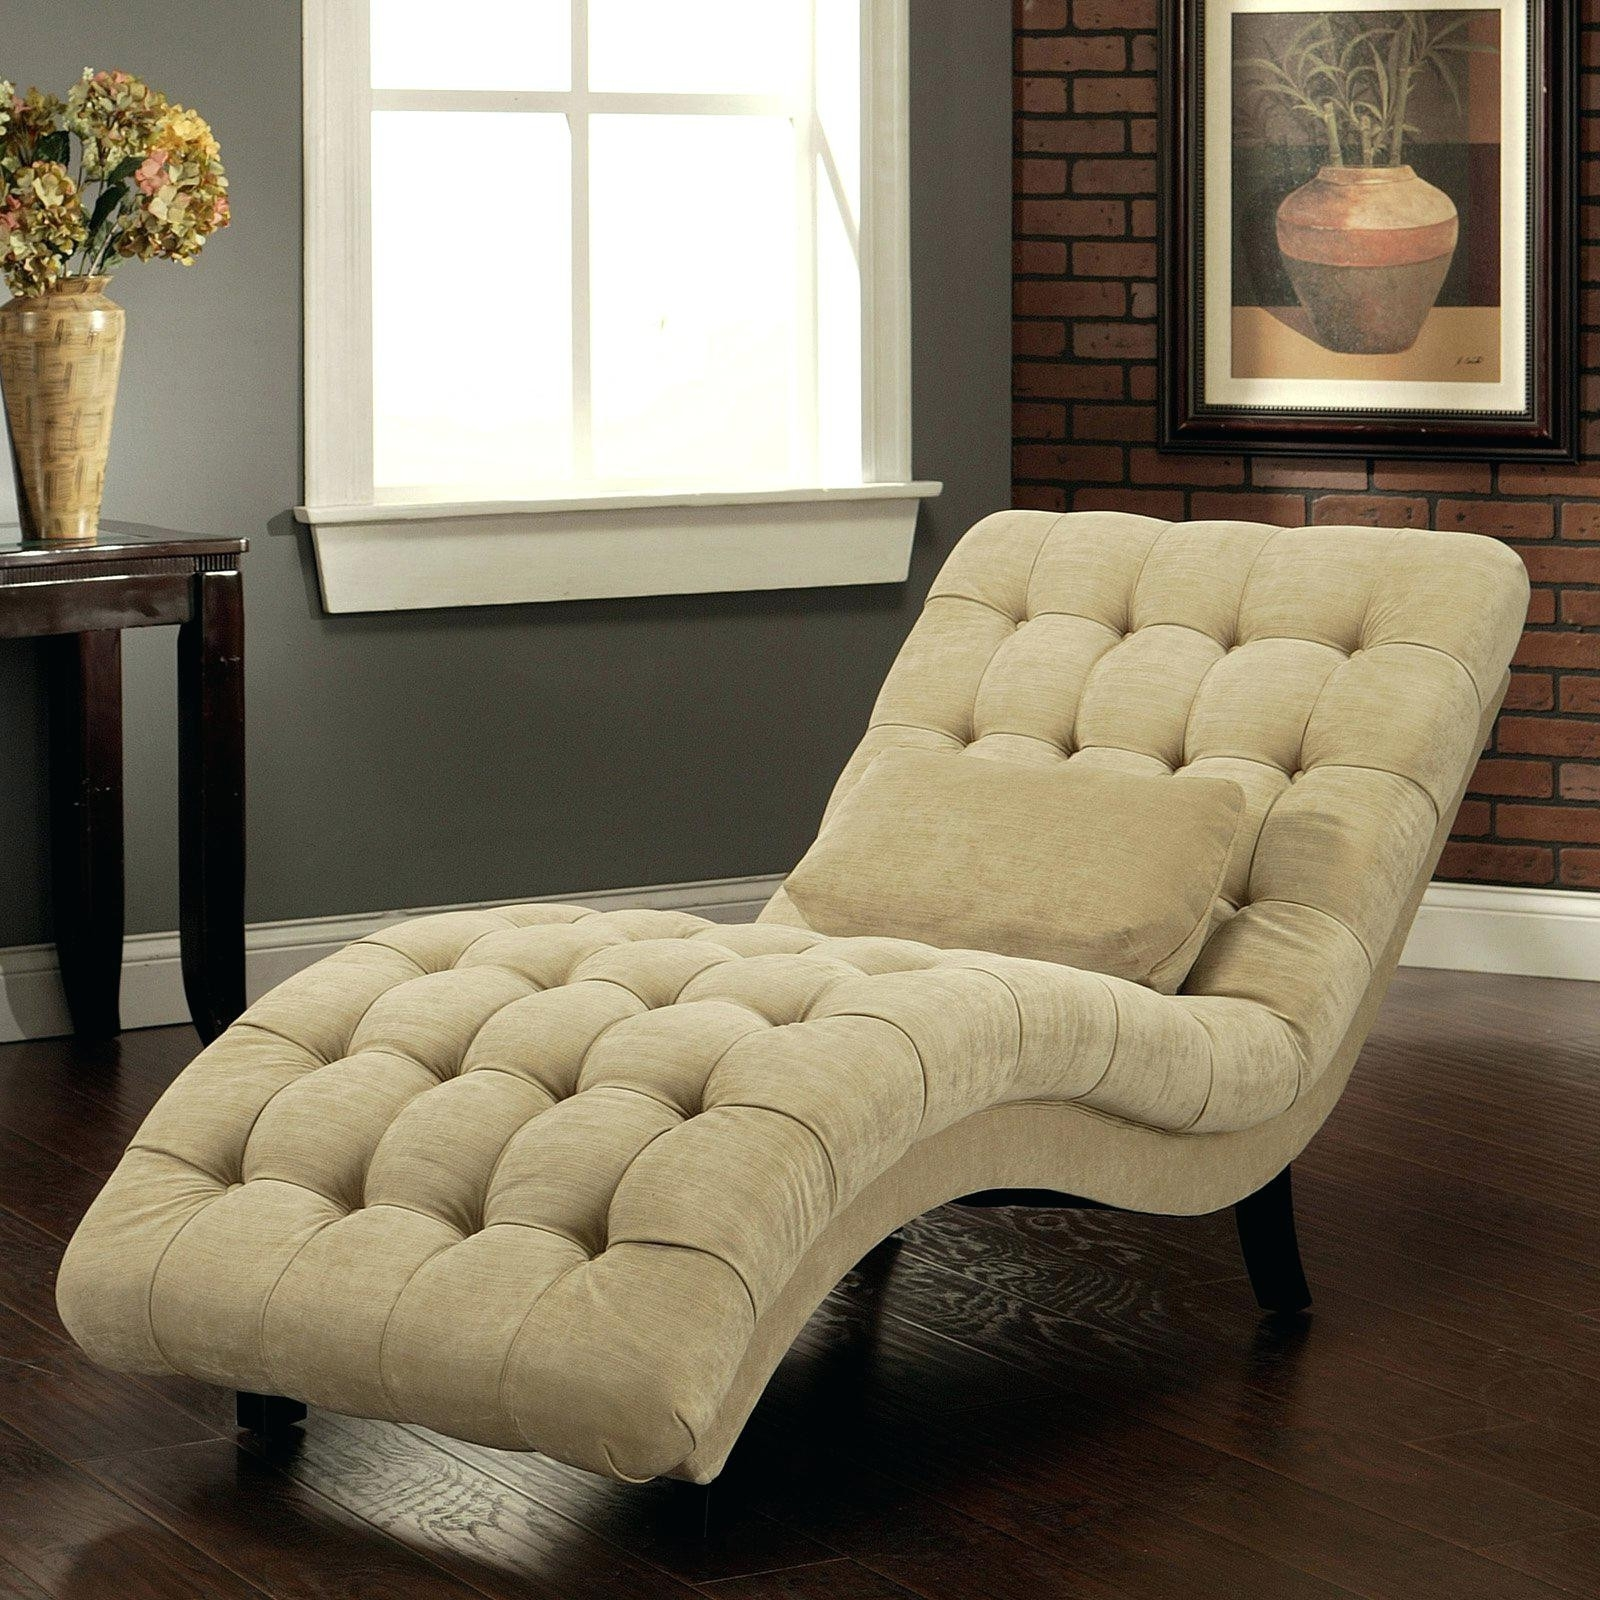 Awesome Microfiber Chaise Lounge Chair – Home With Regard To Favorite Microfiber Chaise Lounge Chairs (View 4 of 15)